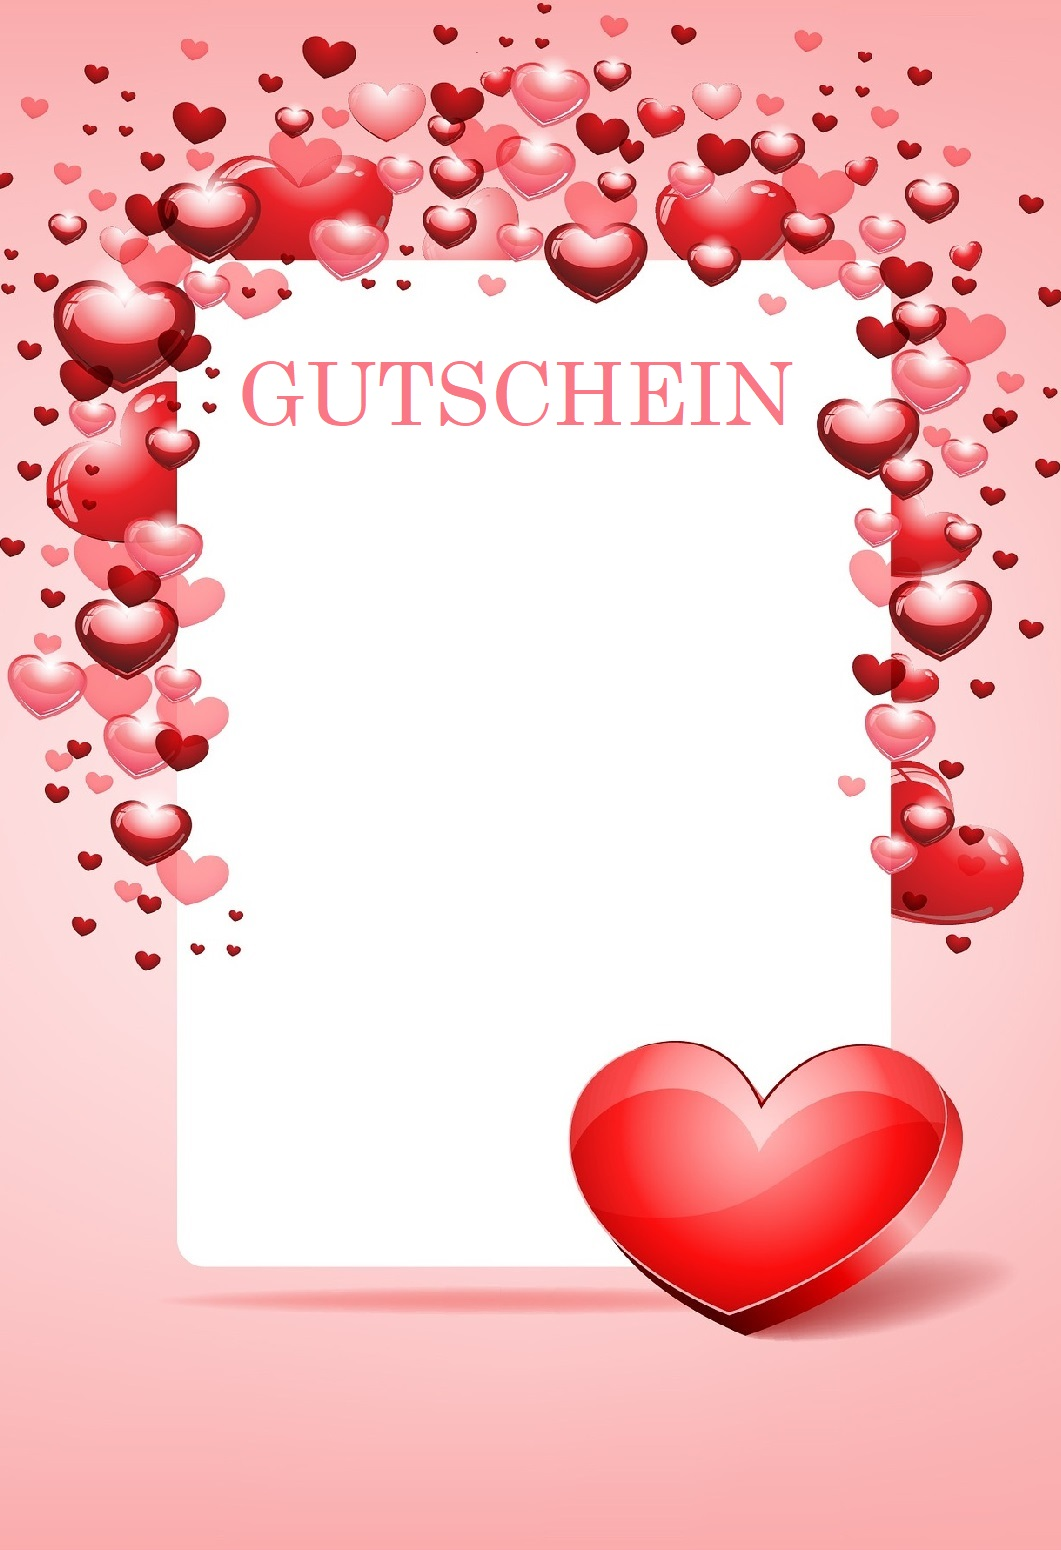 GUTSCHEIN SOFTWARE FREEWARE